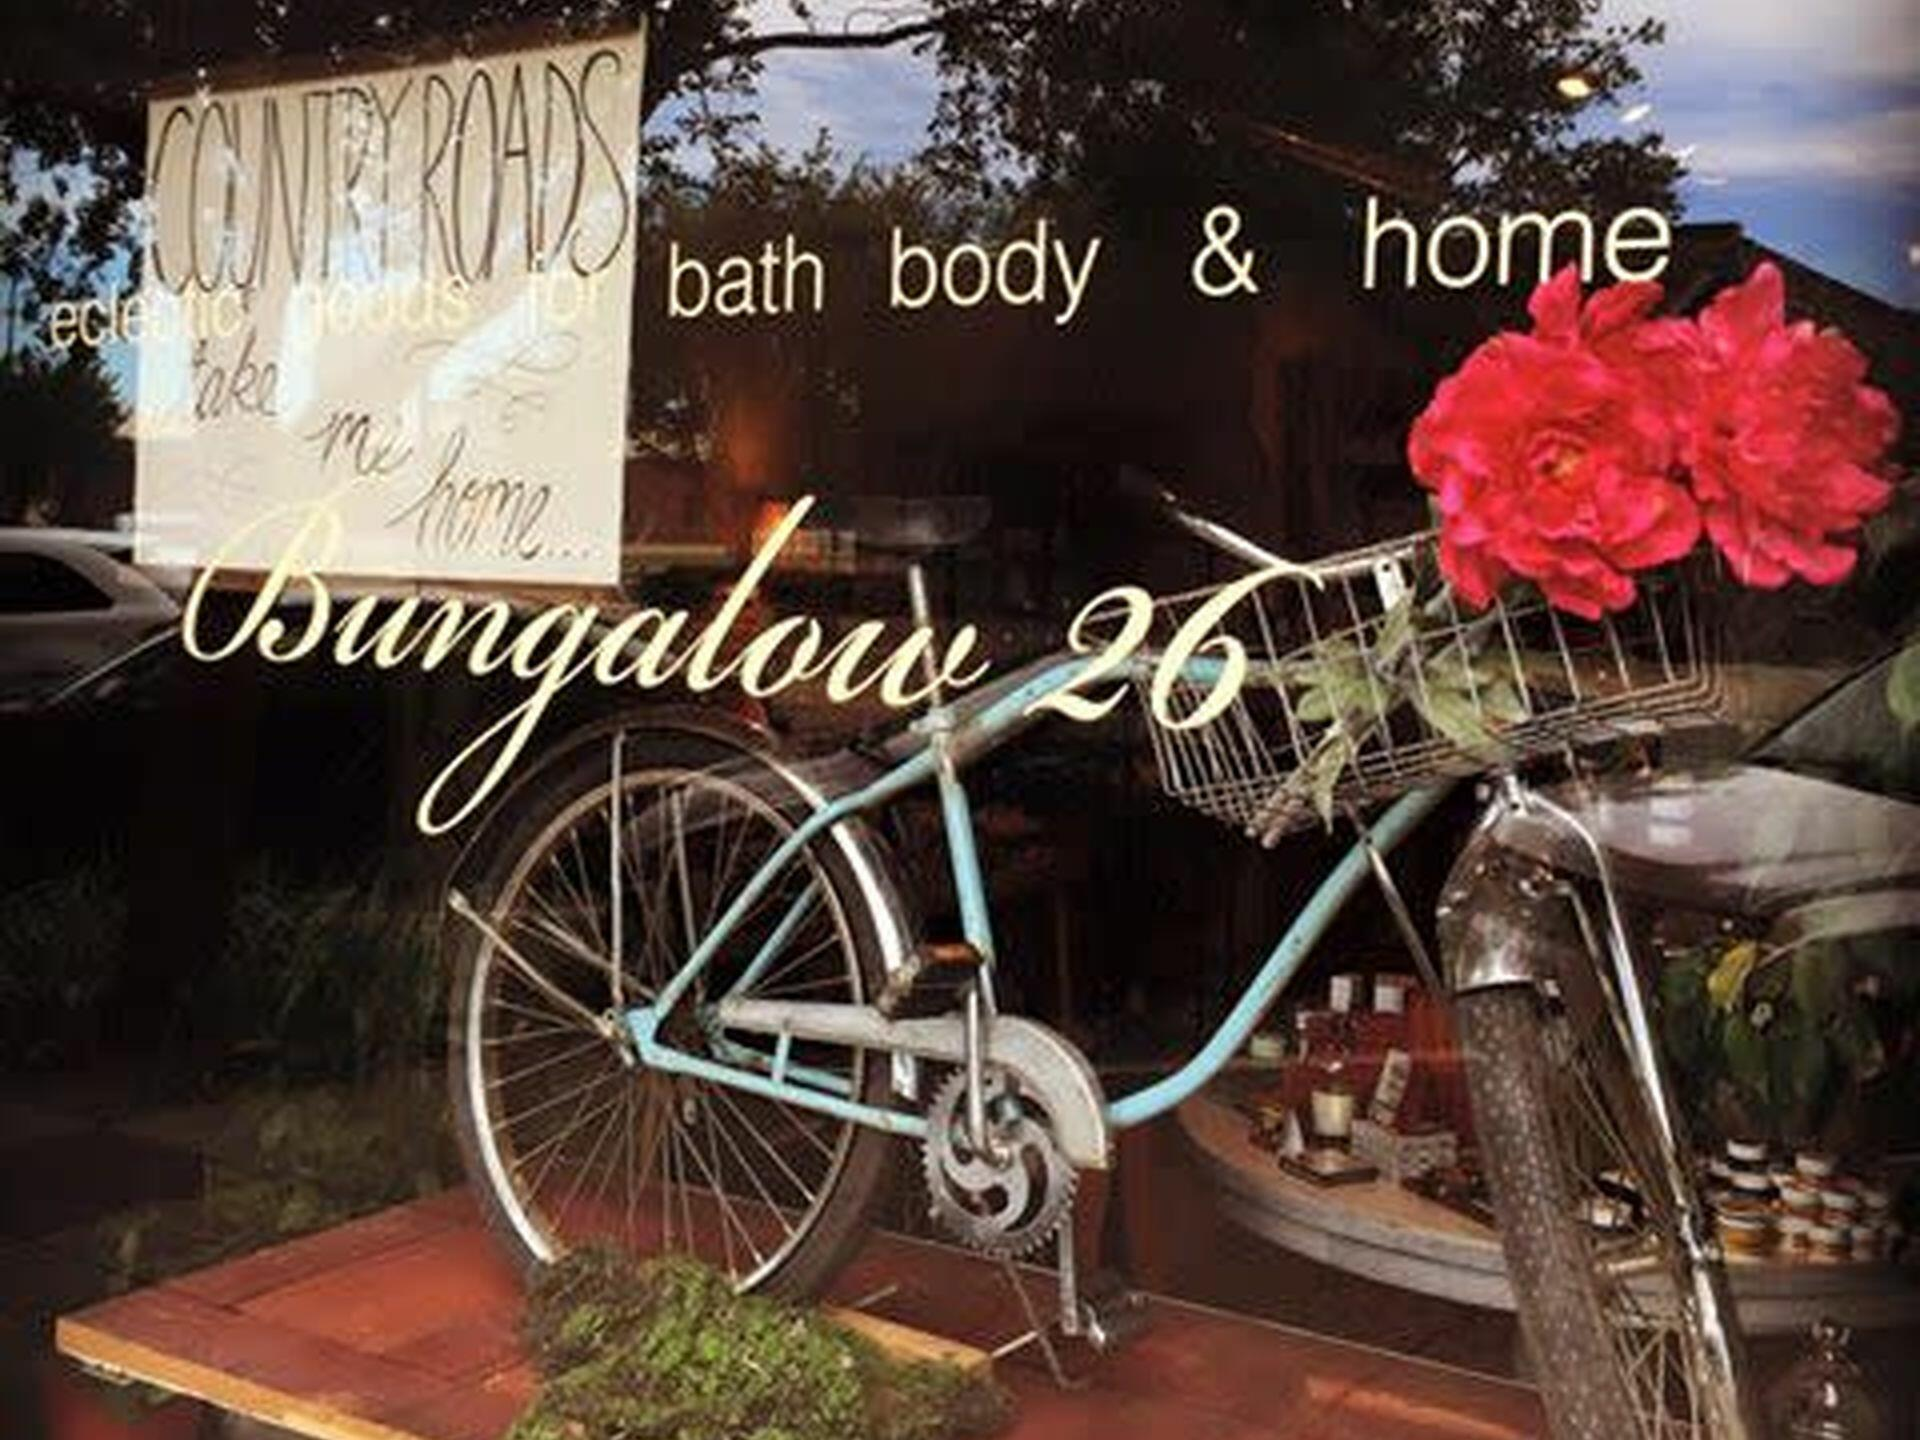 Window shopping at Bungalow 26 near Hotel at Old Town Wichita